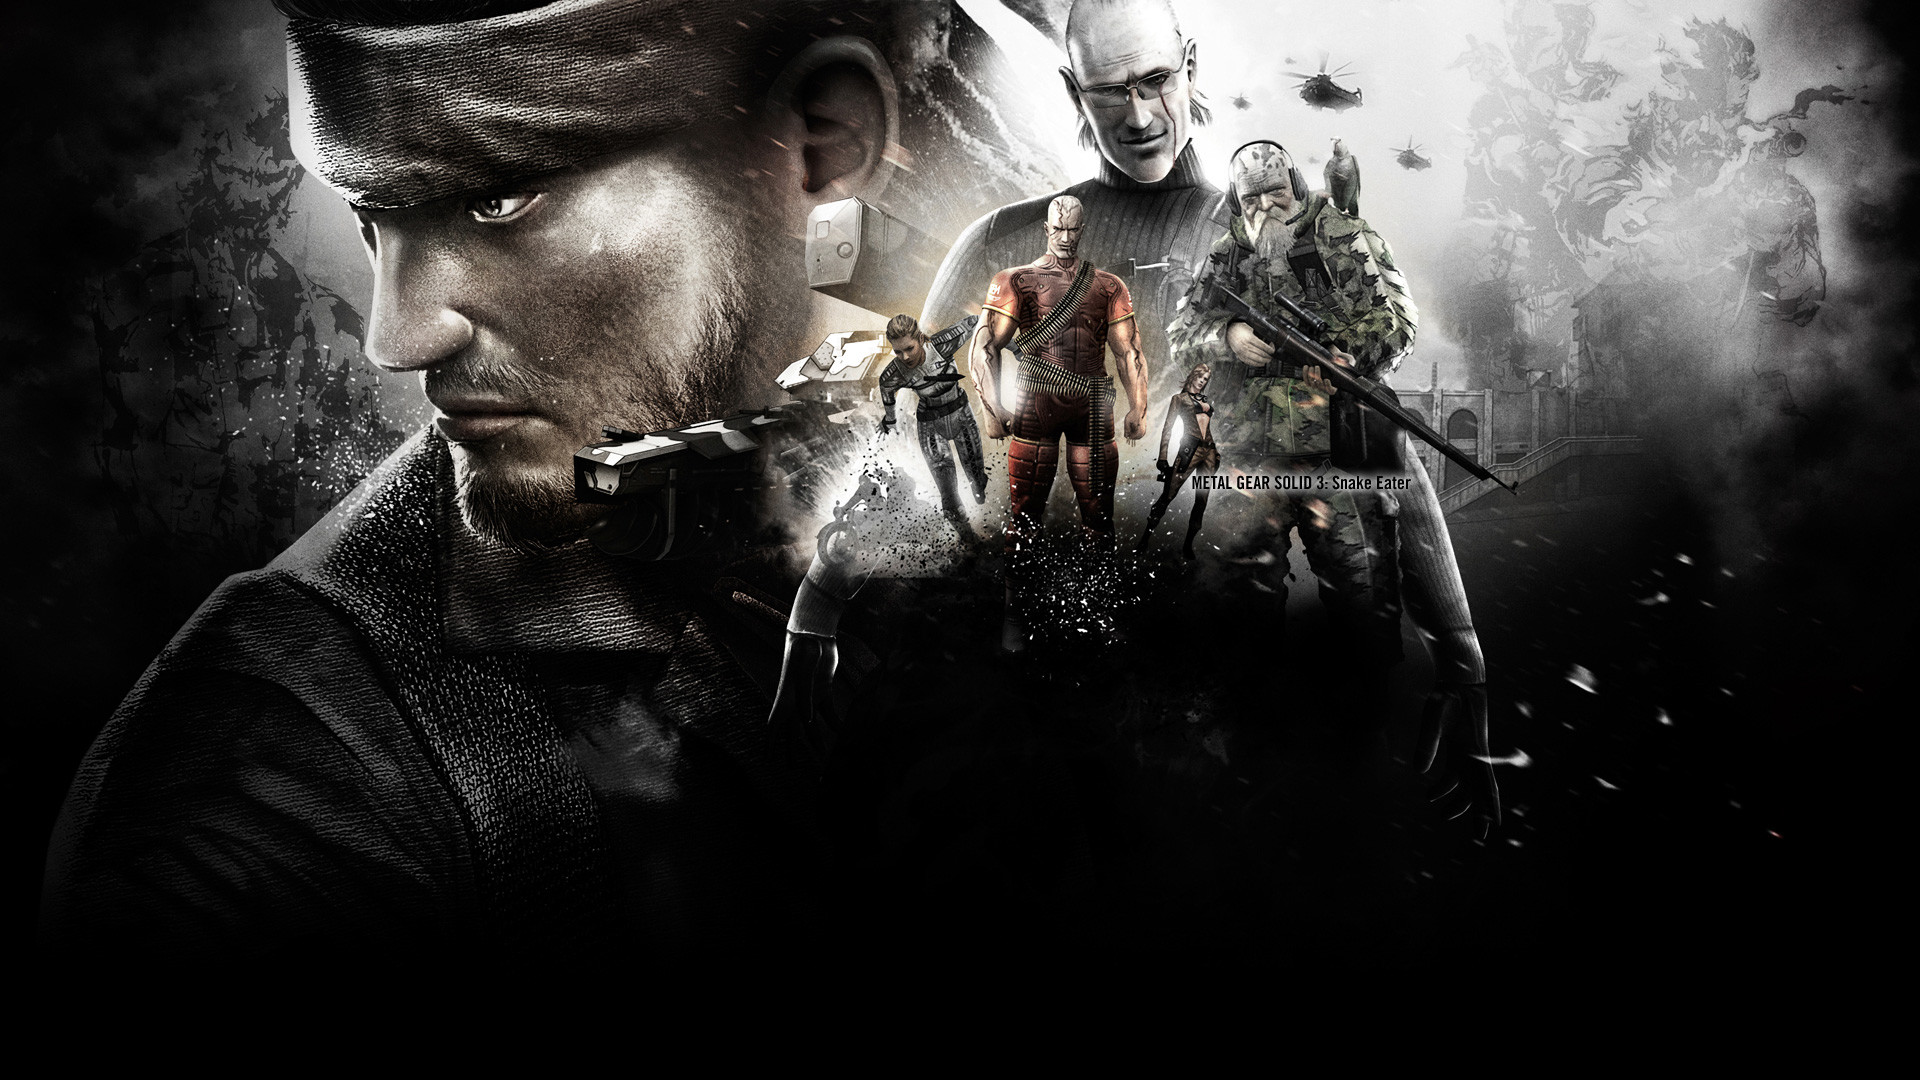 Metal Gear Solid HD Wallpapers and Backgrounds | HD Wallpapers | Pinterest  | Metal gear solid, Metal gear and Hd wallpaper